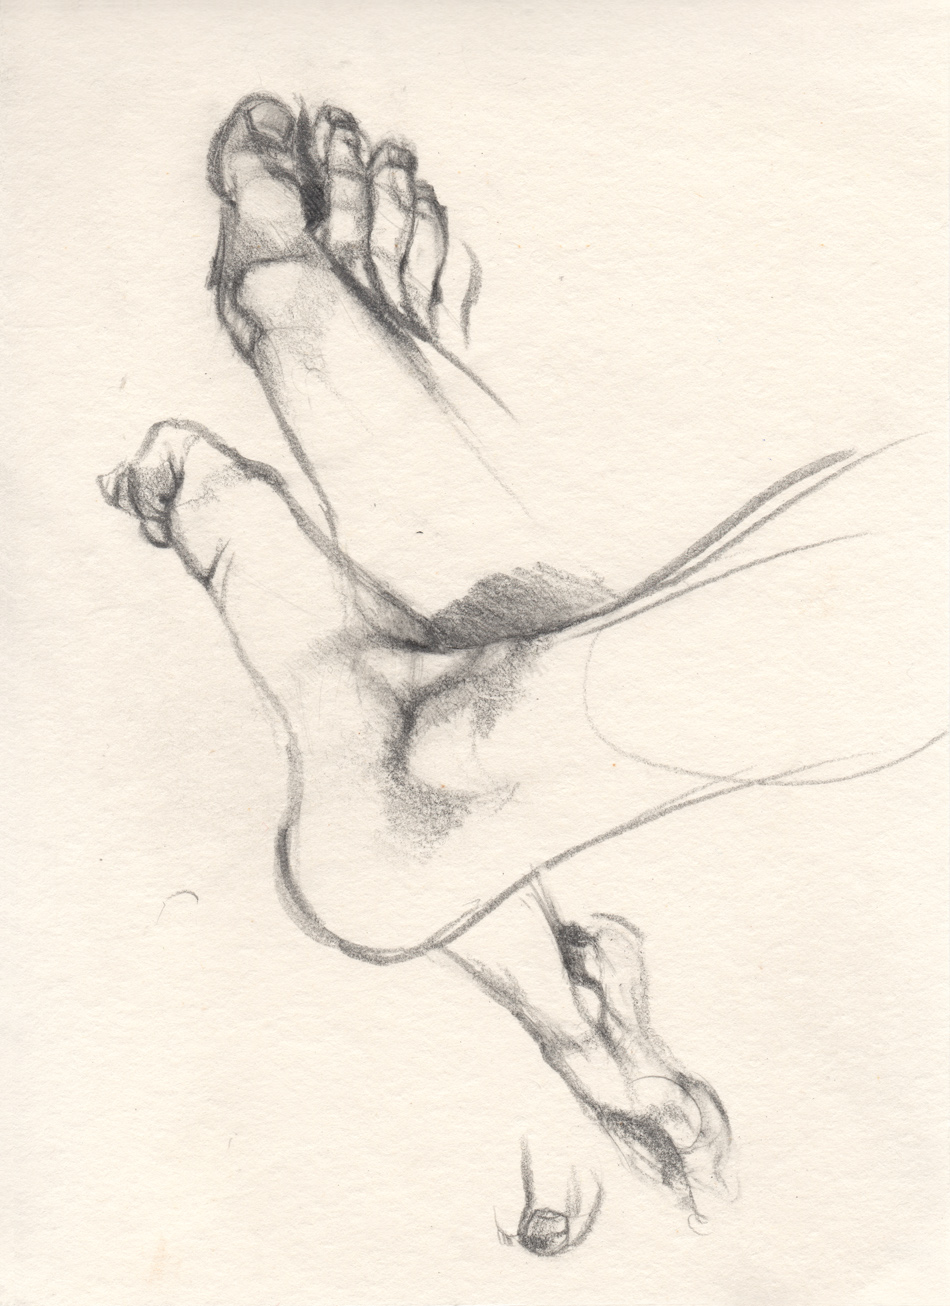 The studies of my foot